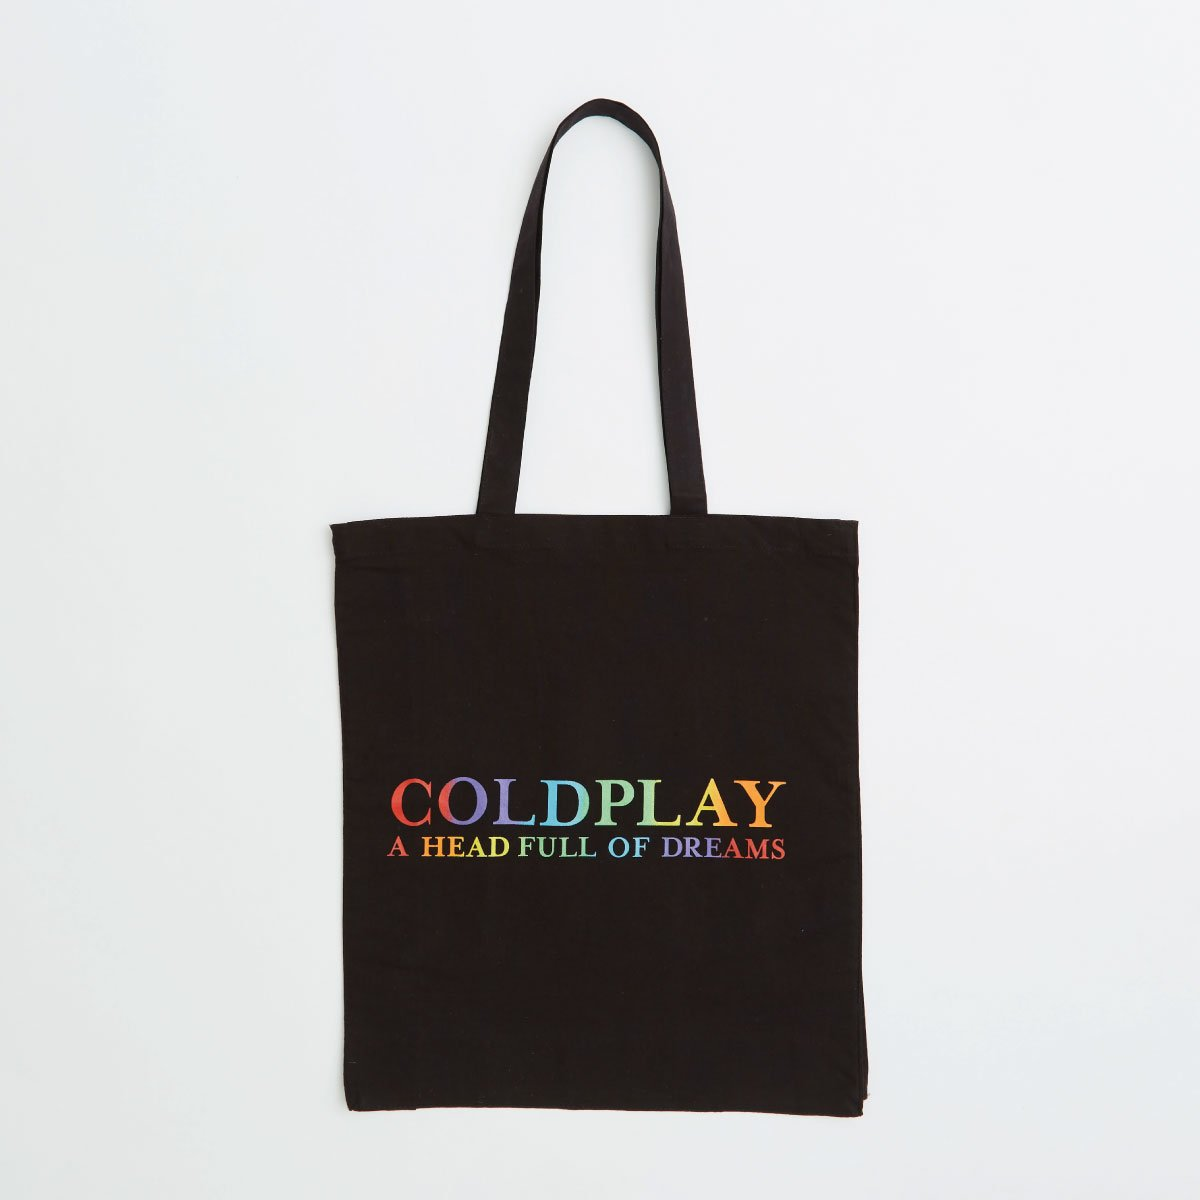 canvas bags in any size from an wholesale supplier of UK